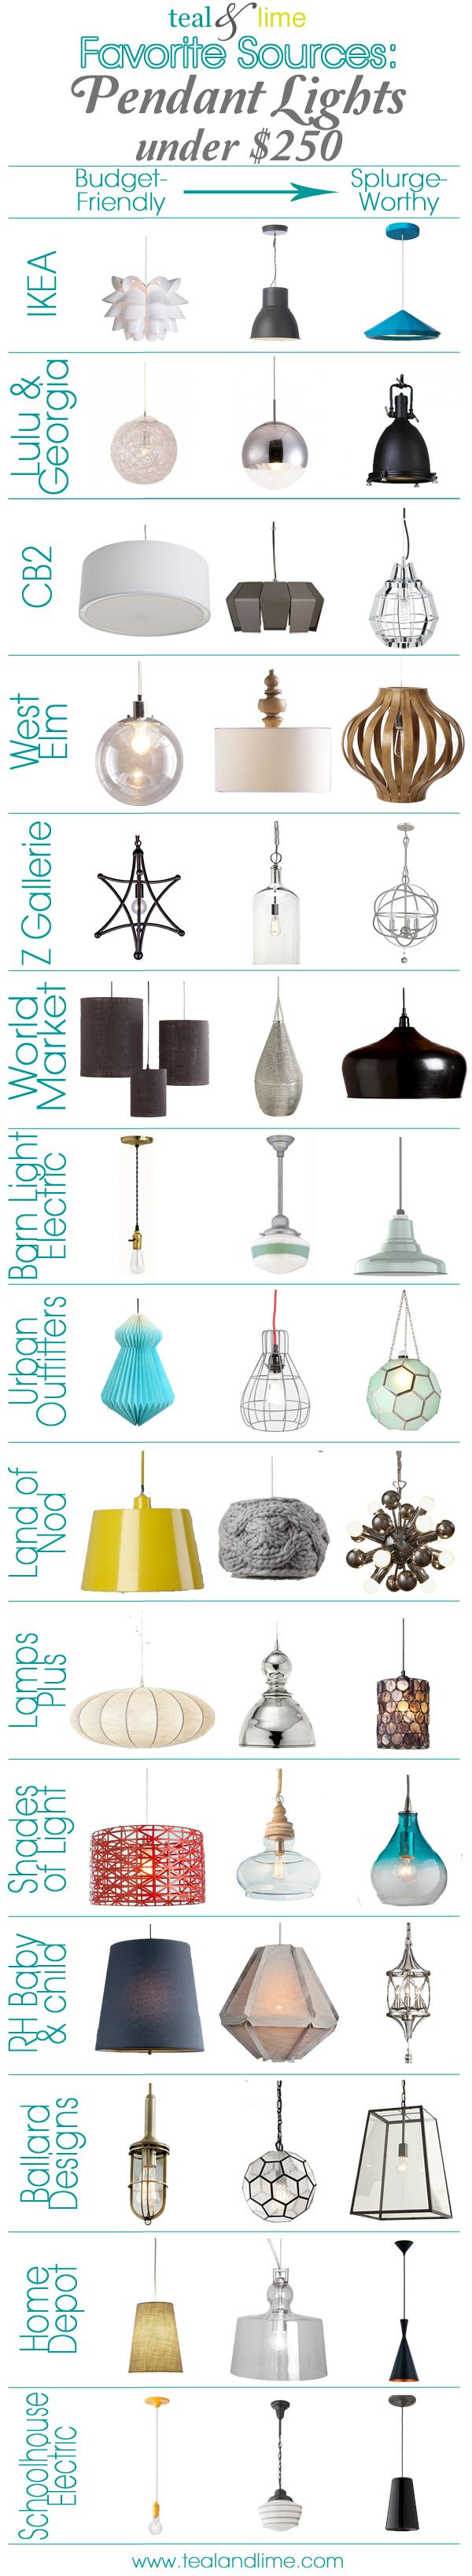 Favorite Sources Pendant Lights | Teal u0026 Lime  sc 1 st  Pinterest & Best 25+ Pendant lighting ideas on Pinterest | Pendant lights ... azcodes.com